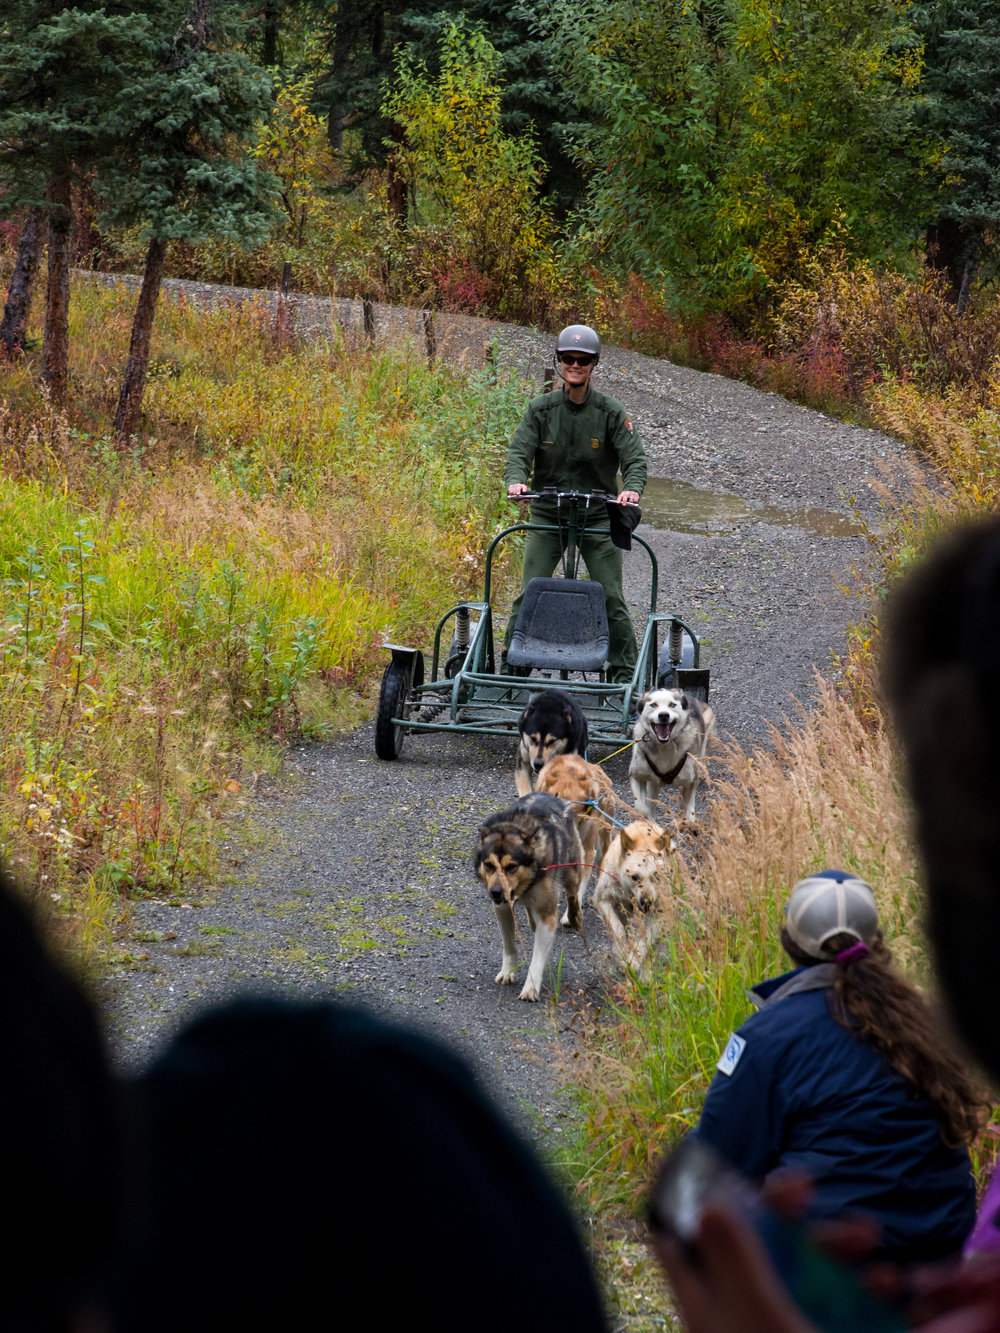 A park ranger demonstrates the pulling power of the sled dogs.